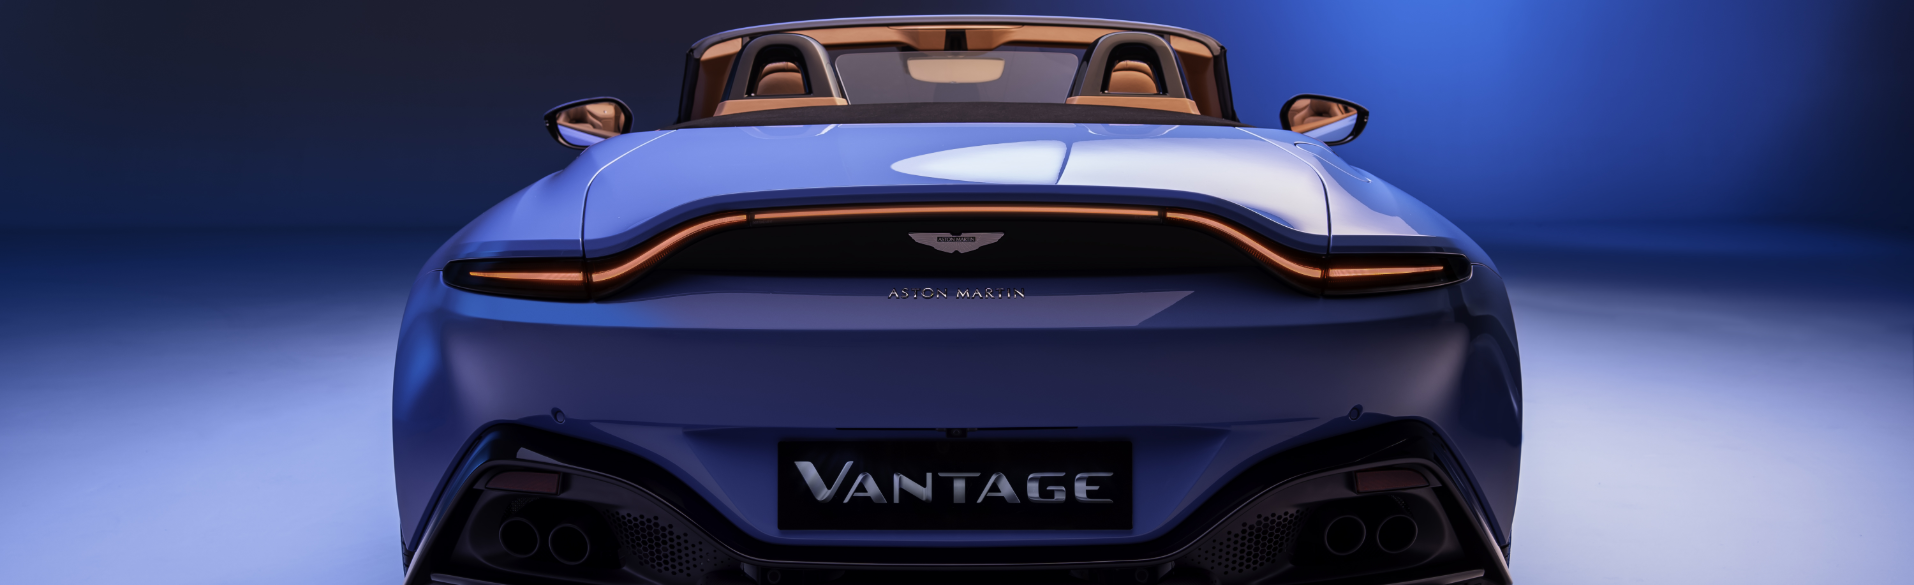 2021 Aston Martin Vantage Roadster Roof Down